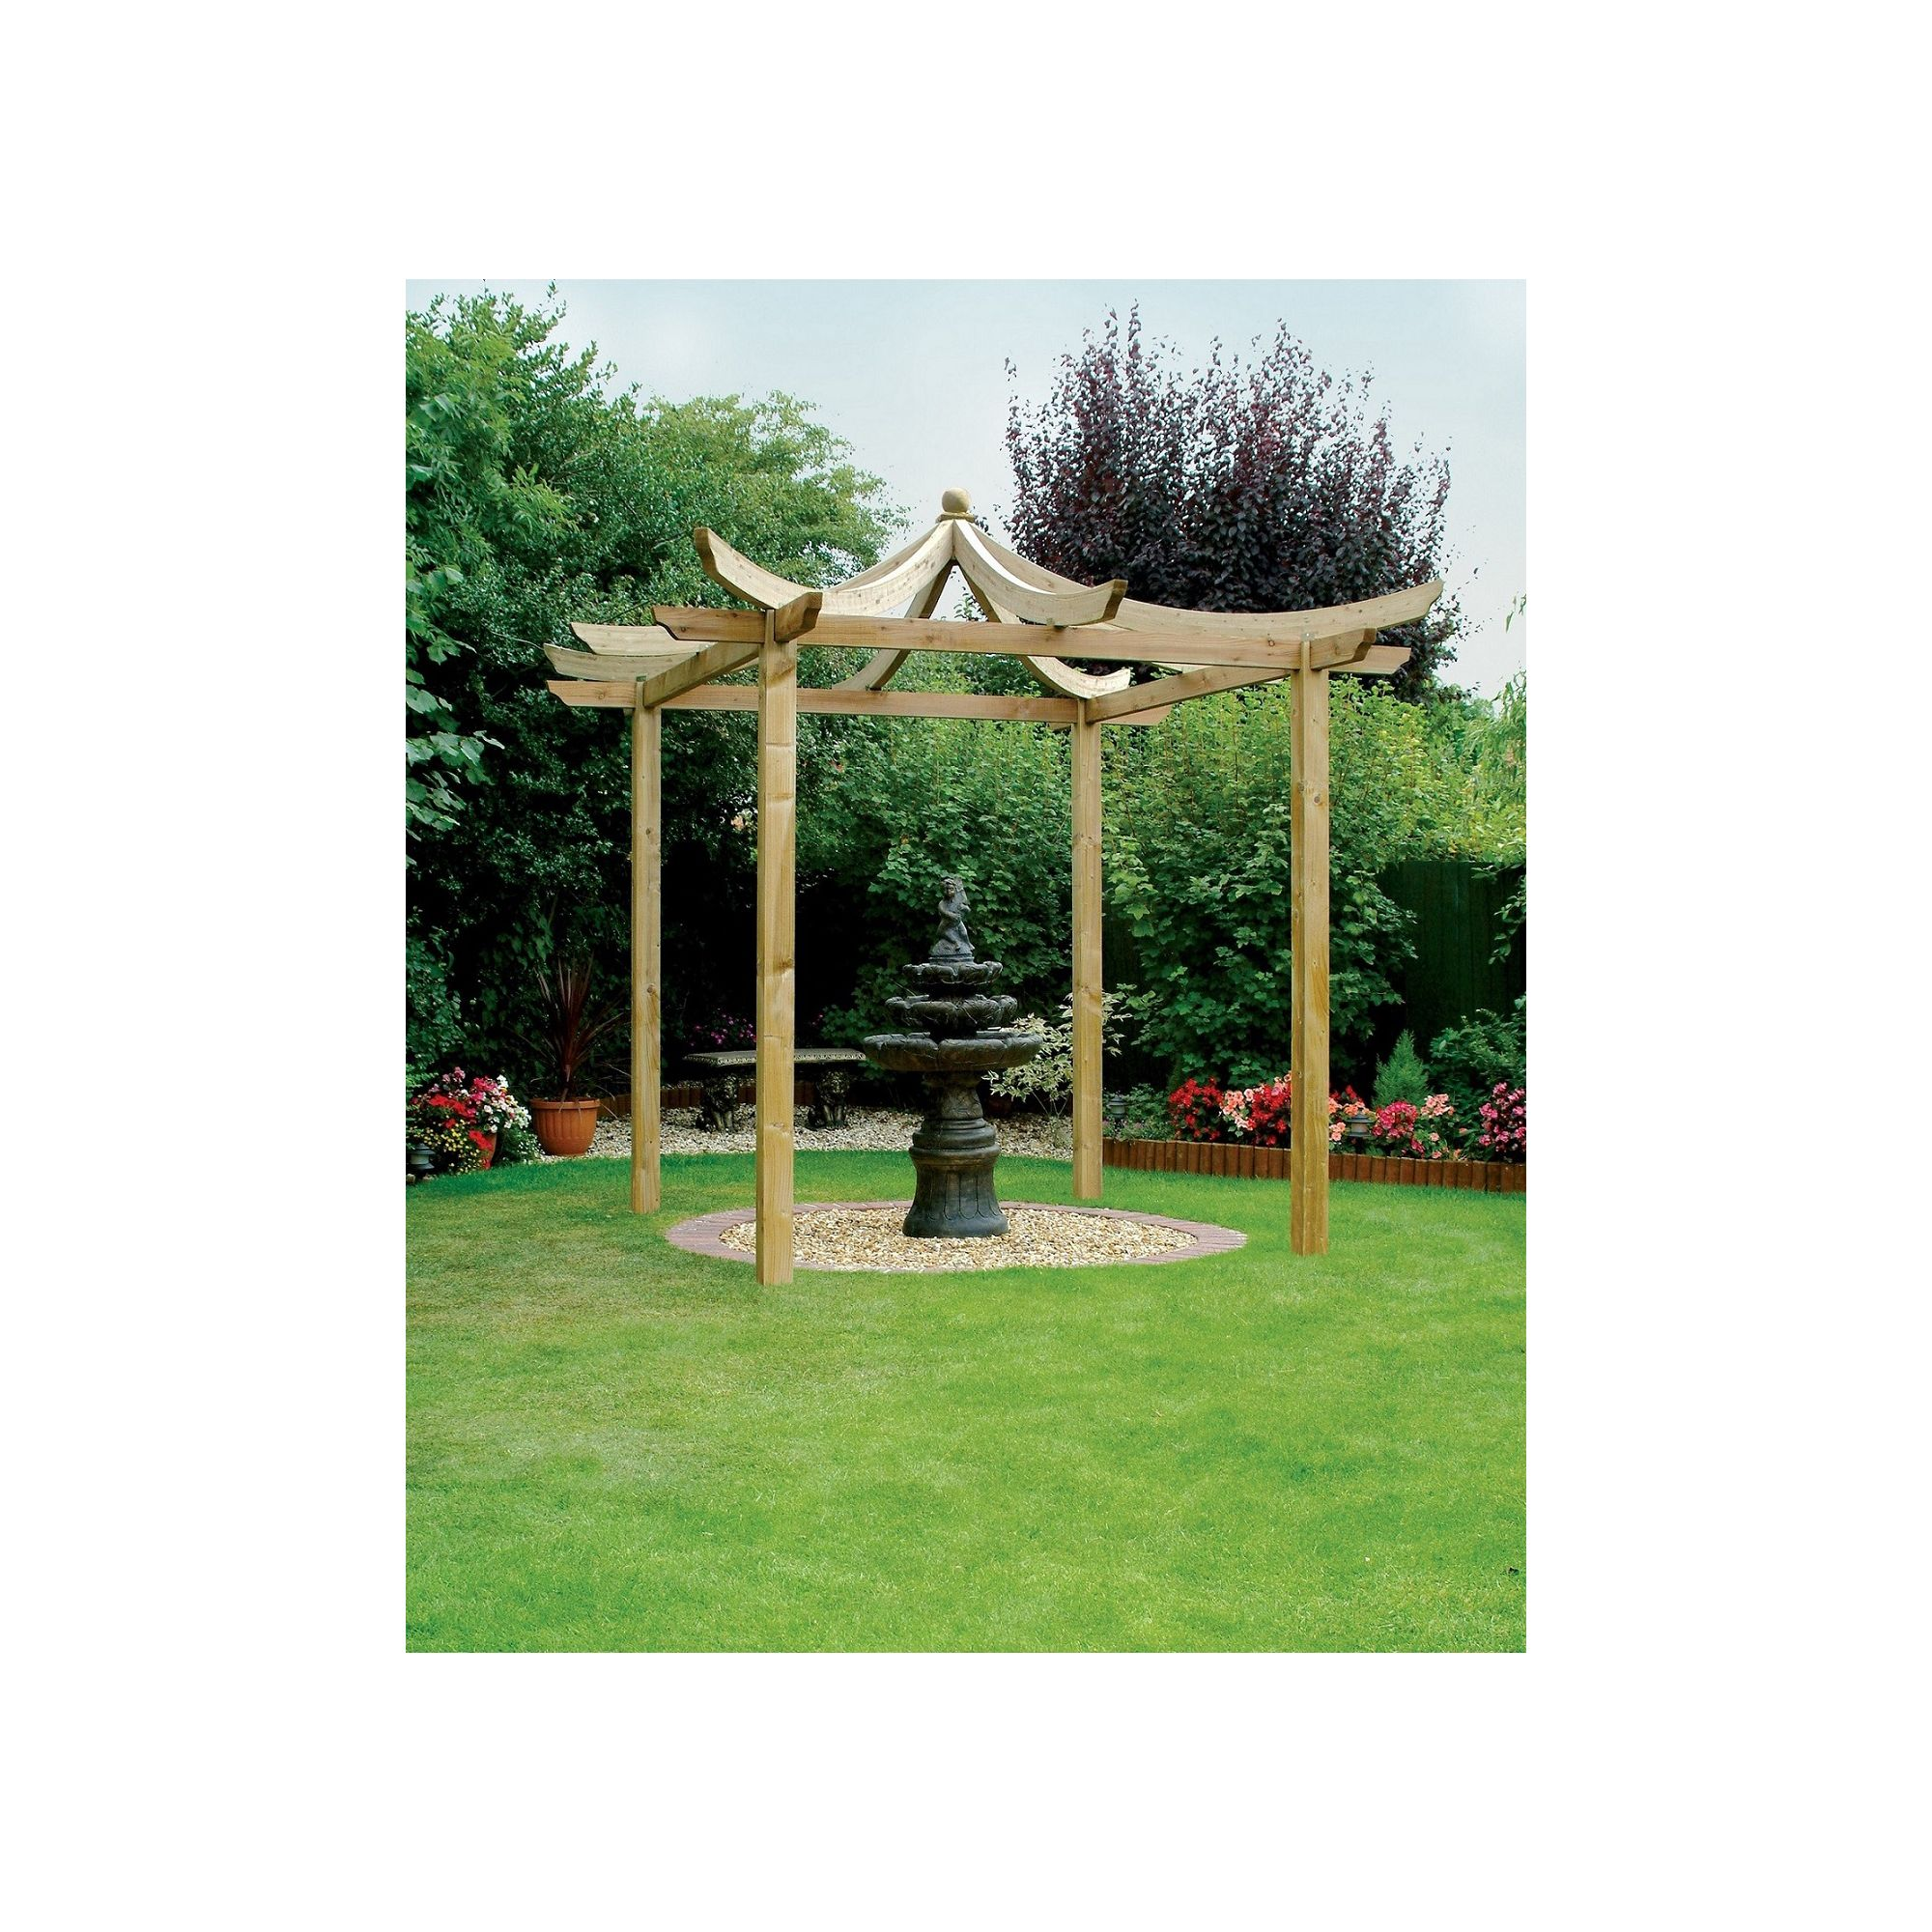 Ashcott Pergola - Includes 4 bags of Metcrete for fixing the posts into the ground at Tesco Direct